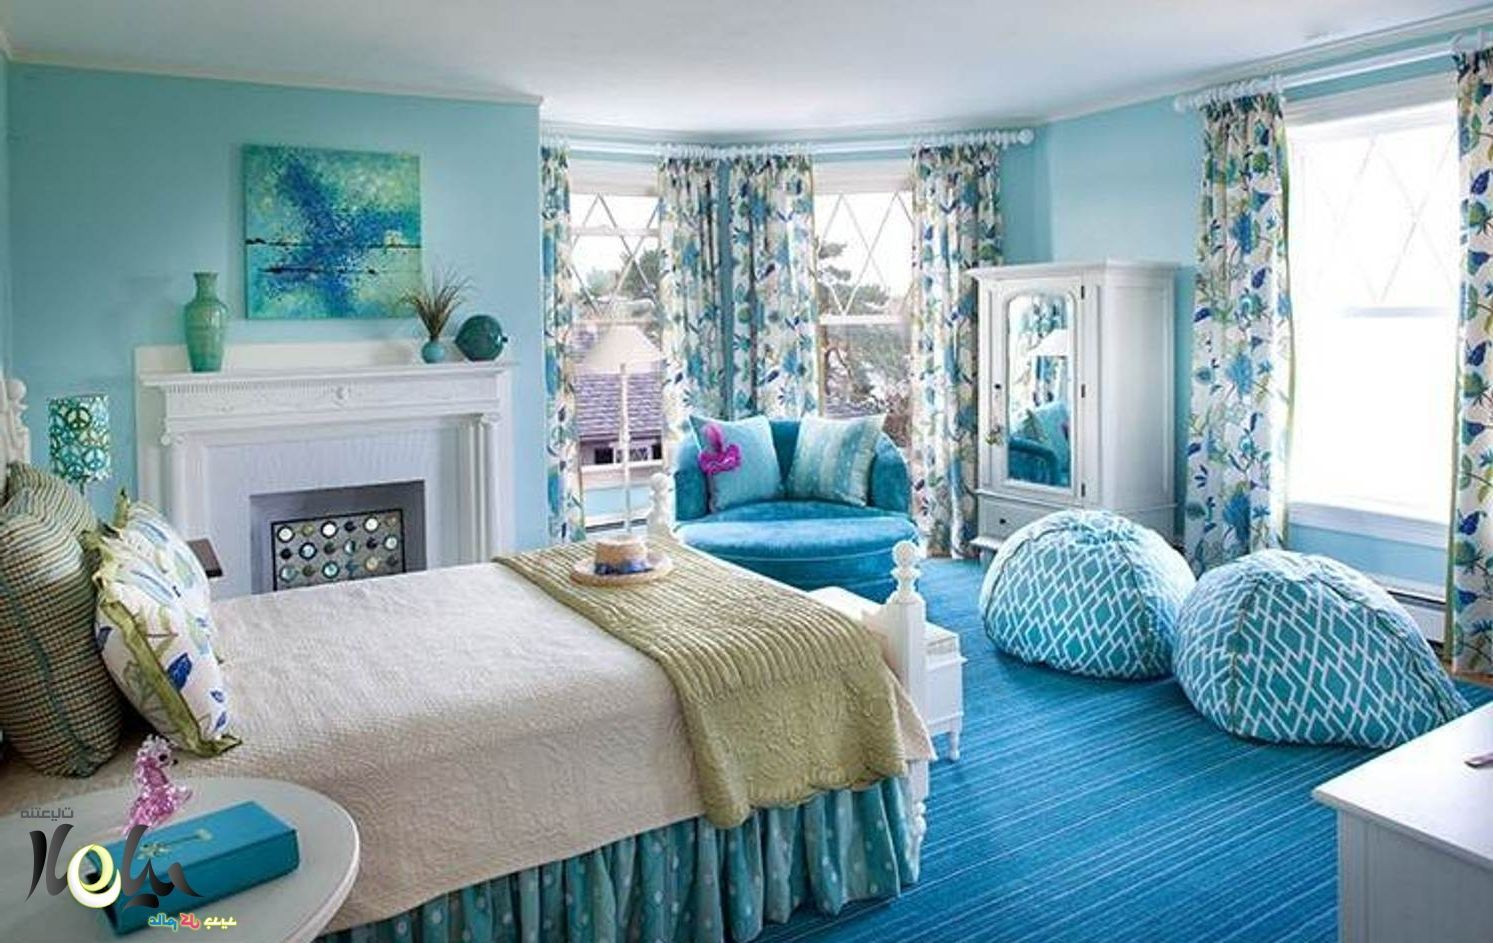 Bedroom , Nice Bedrooms For Girls With Trendy And Catchy Look : Stunning  Blue Bedroom For Girls